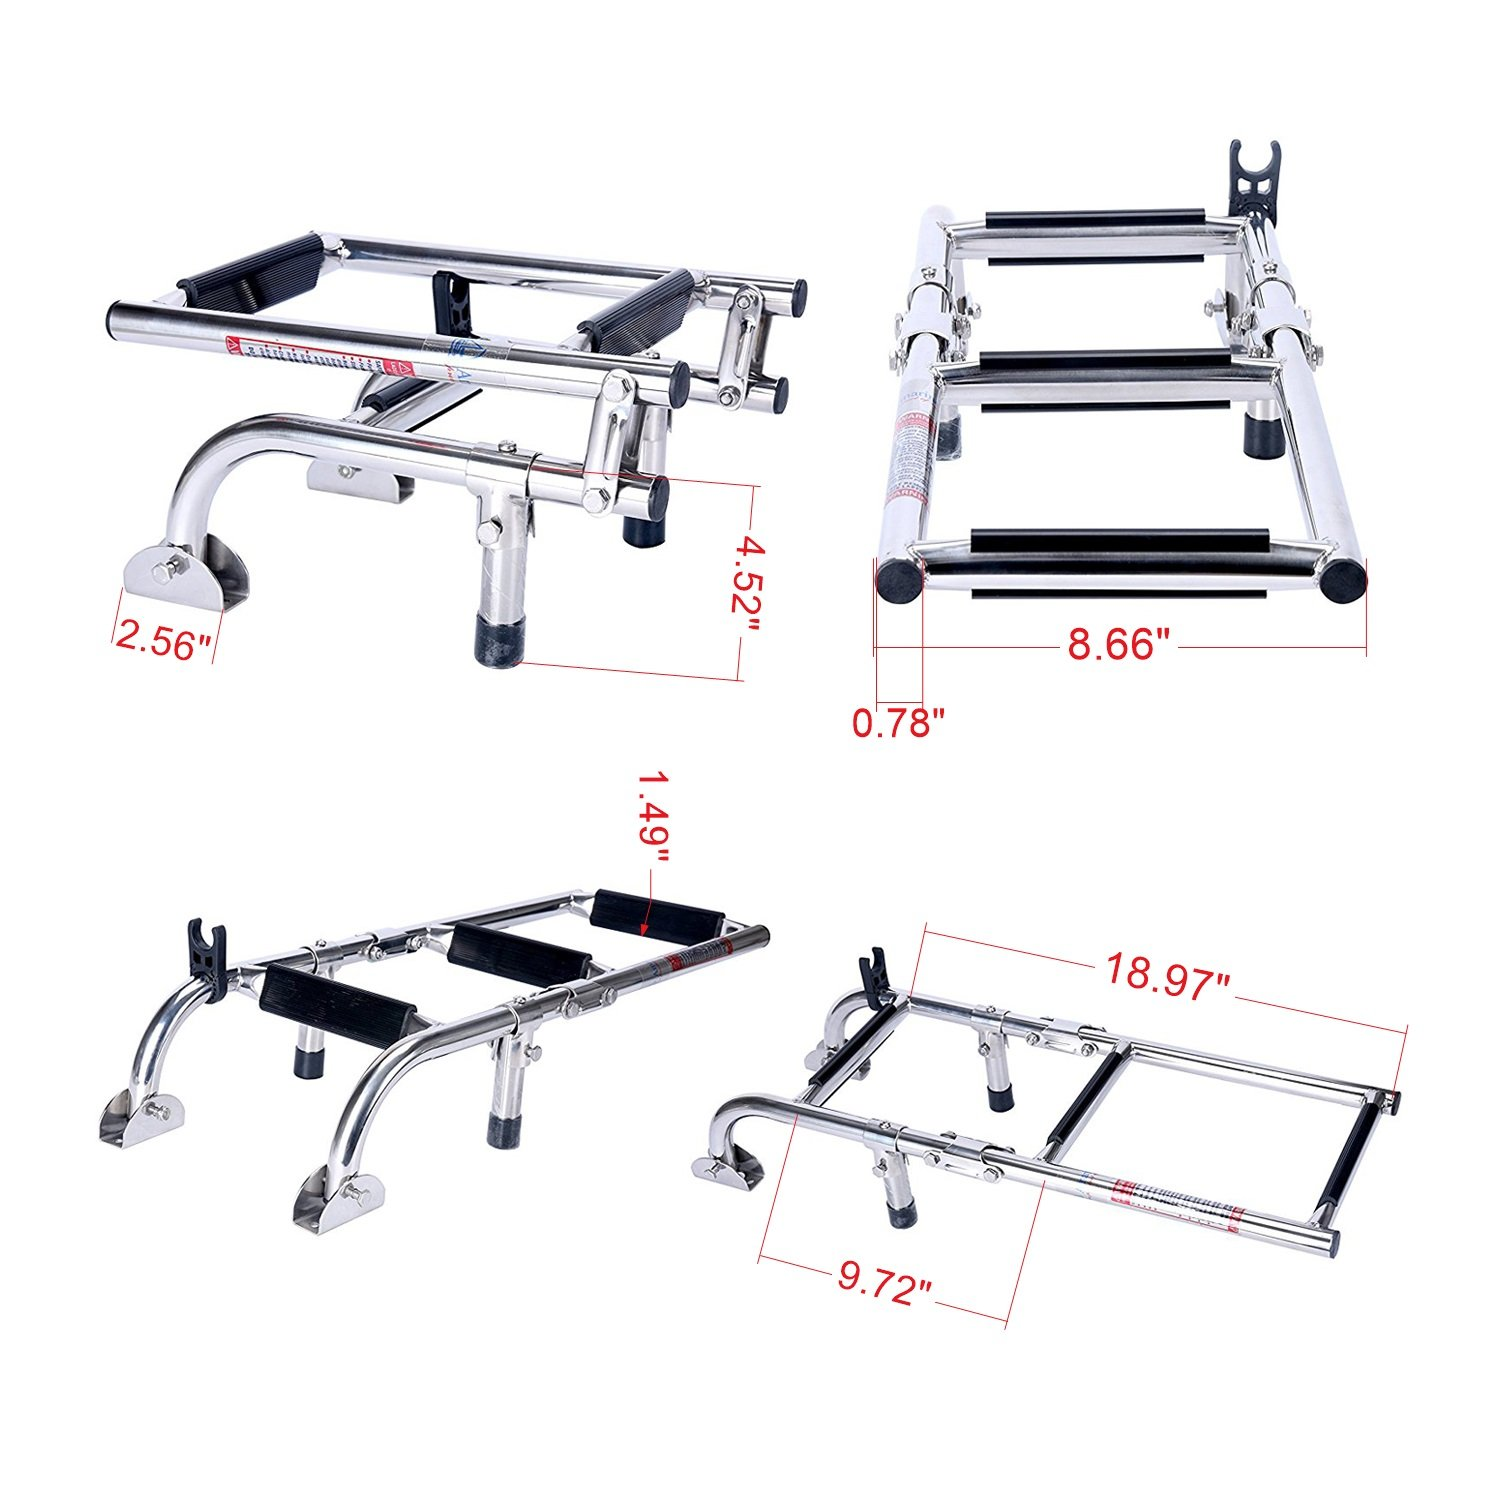 Amarine Made Marine Boat Foldable Stainless Steel 3 Steps Ladders Stern Mount W Rubber Grips by Amarine Made